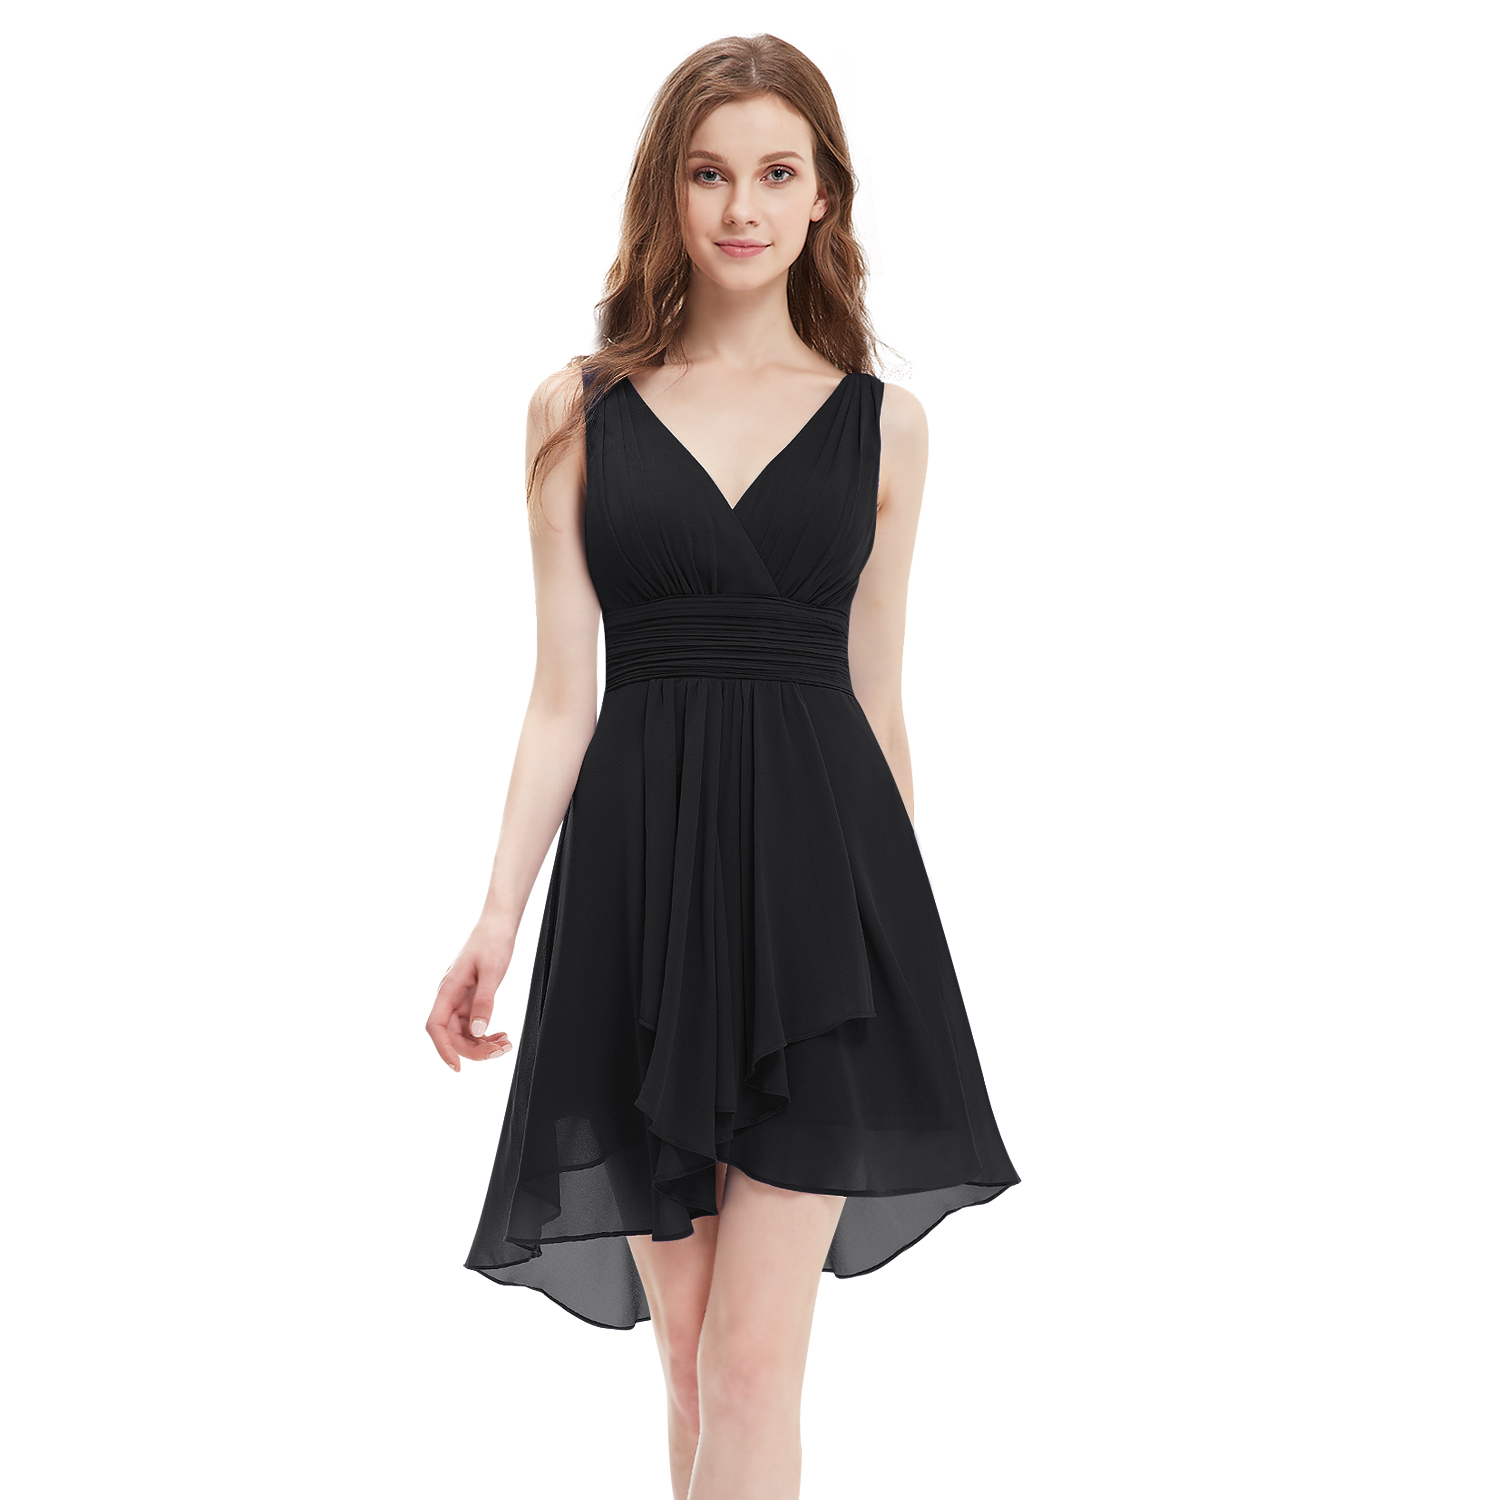 V Neck Short Chiffon Homecoming Prom Dress Formal Cocktail